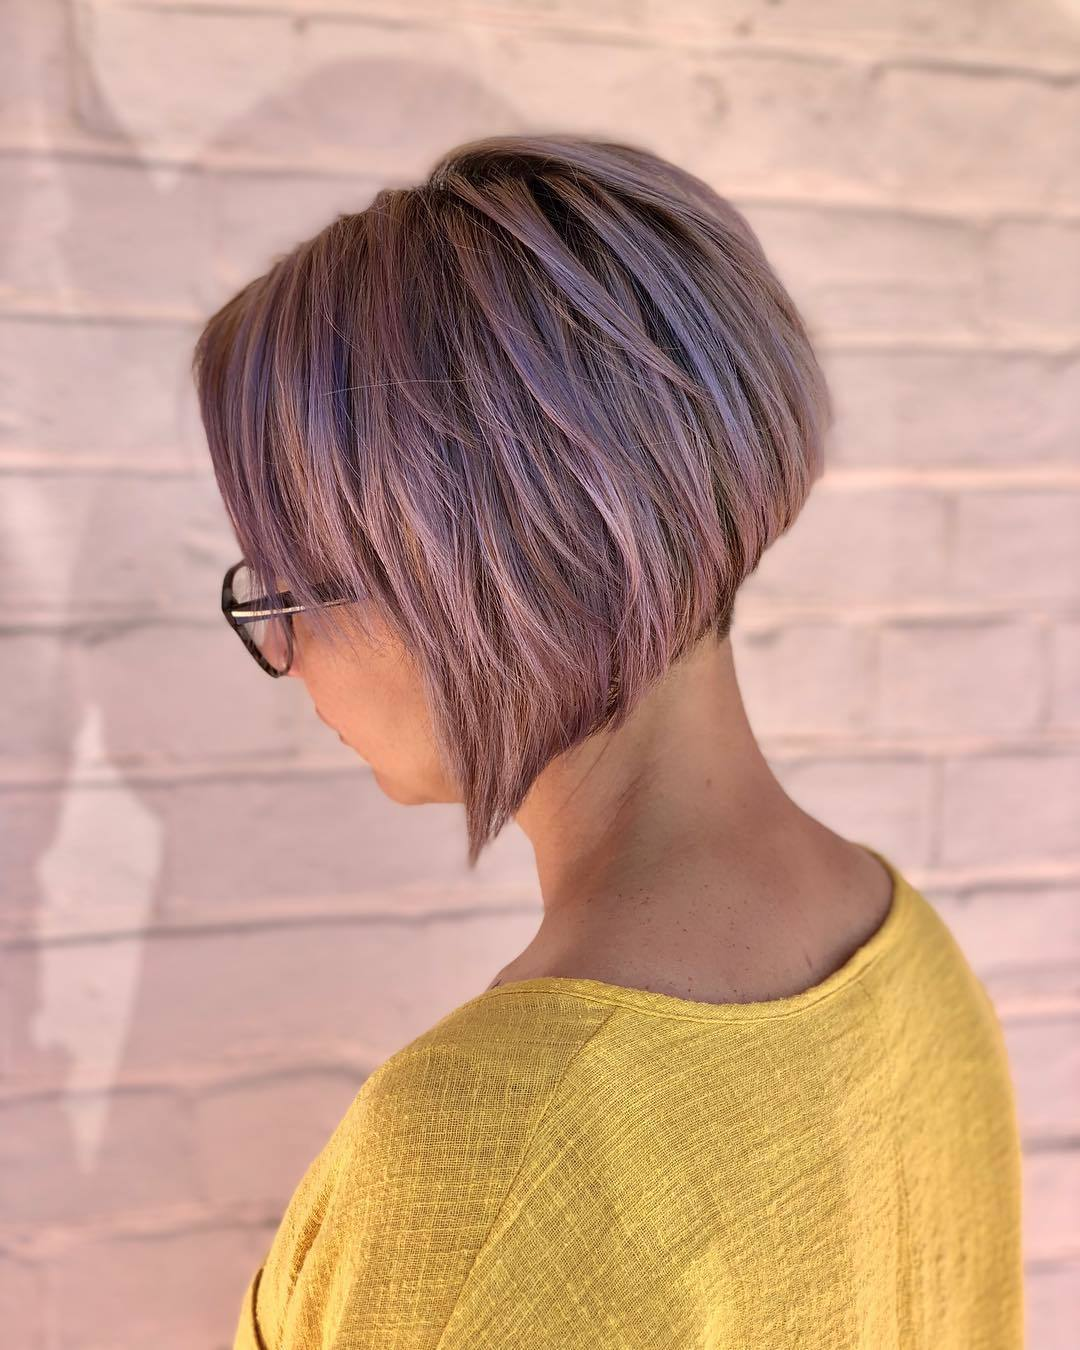 Graduated bob hairstyles: Woman with short lilac graduated bob hairstyle wearing yellow and posing outside